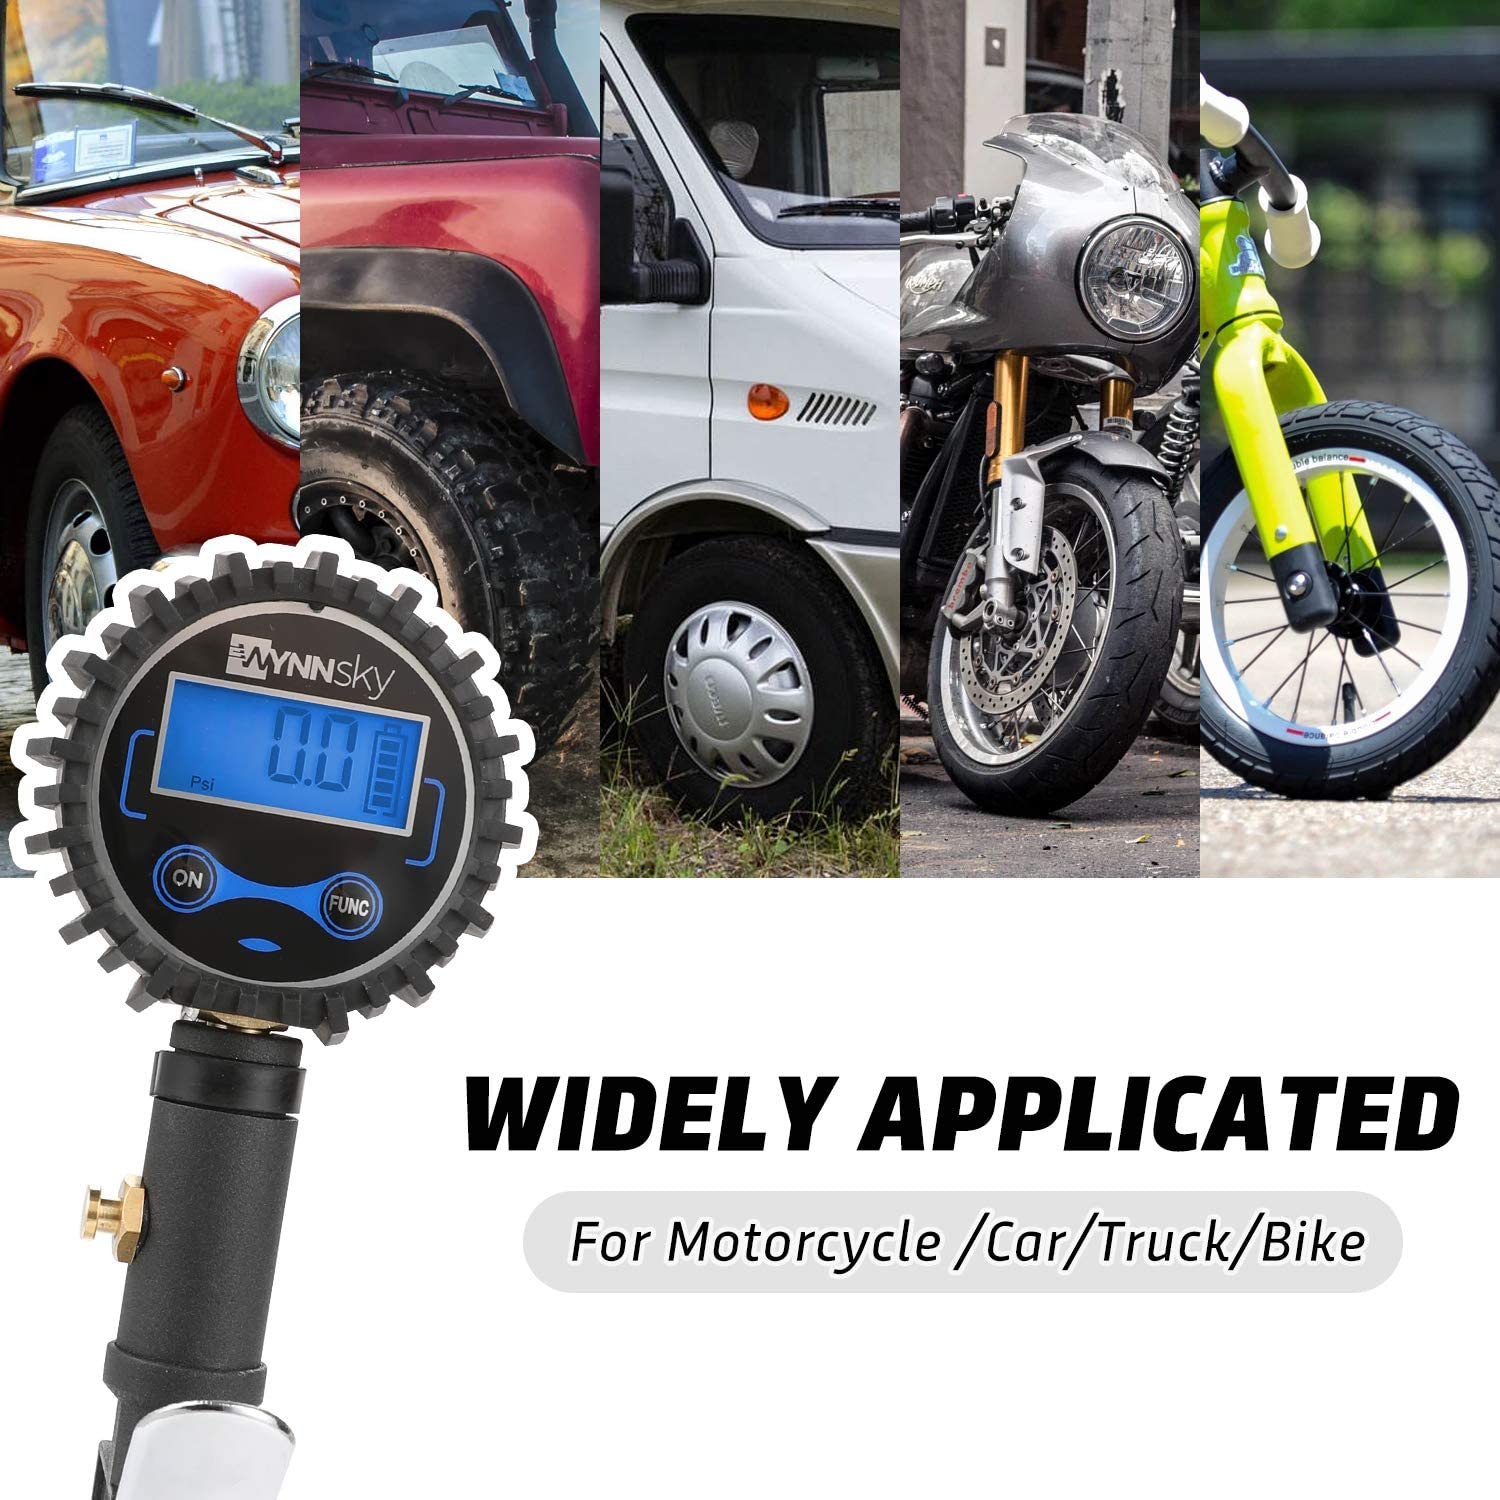 Easy Read Glow Dial Dual Head Air Chuck and Quick Connect Coupler WYNNsky Digital Tire Pressure Gauge 200 PSI and Compressor Accessories Heavy Duty Inflator with Stainless Steel Braided Hose